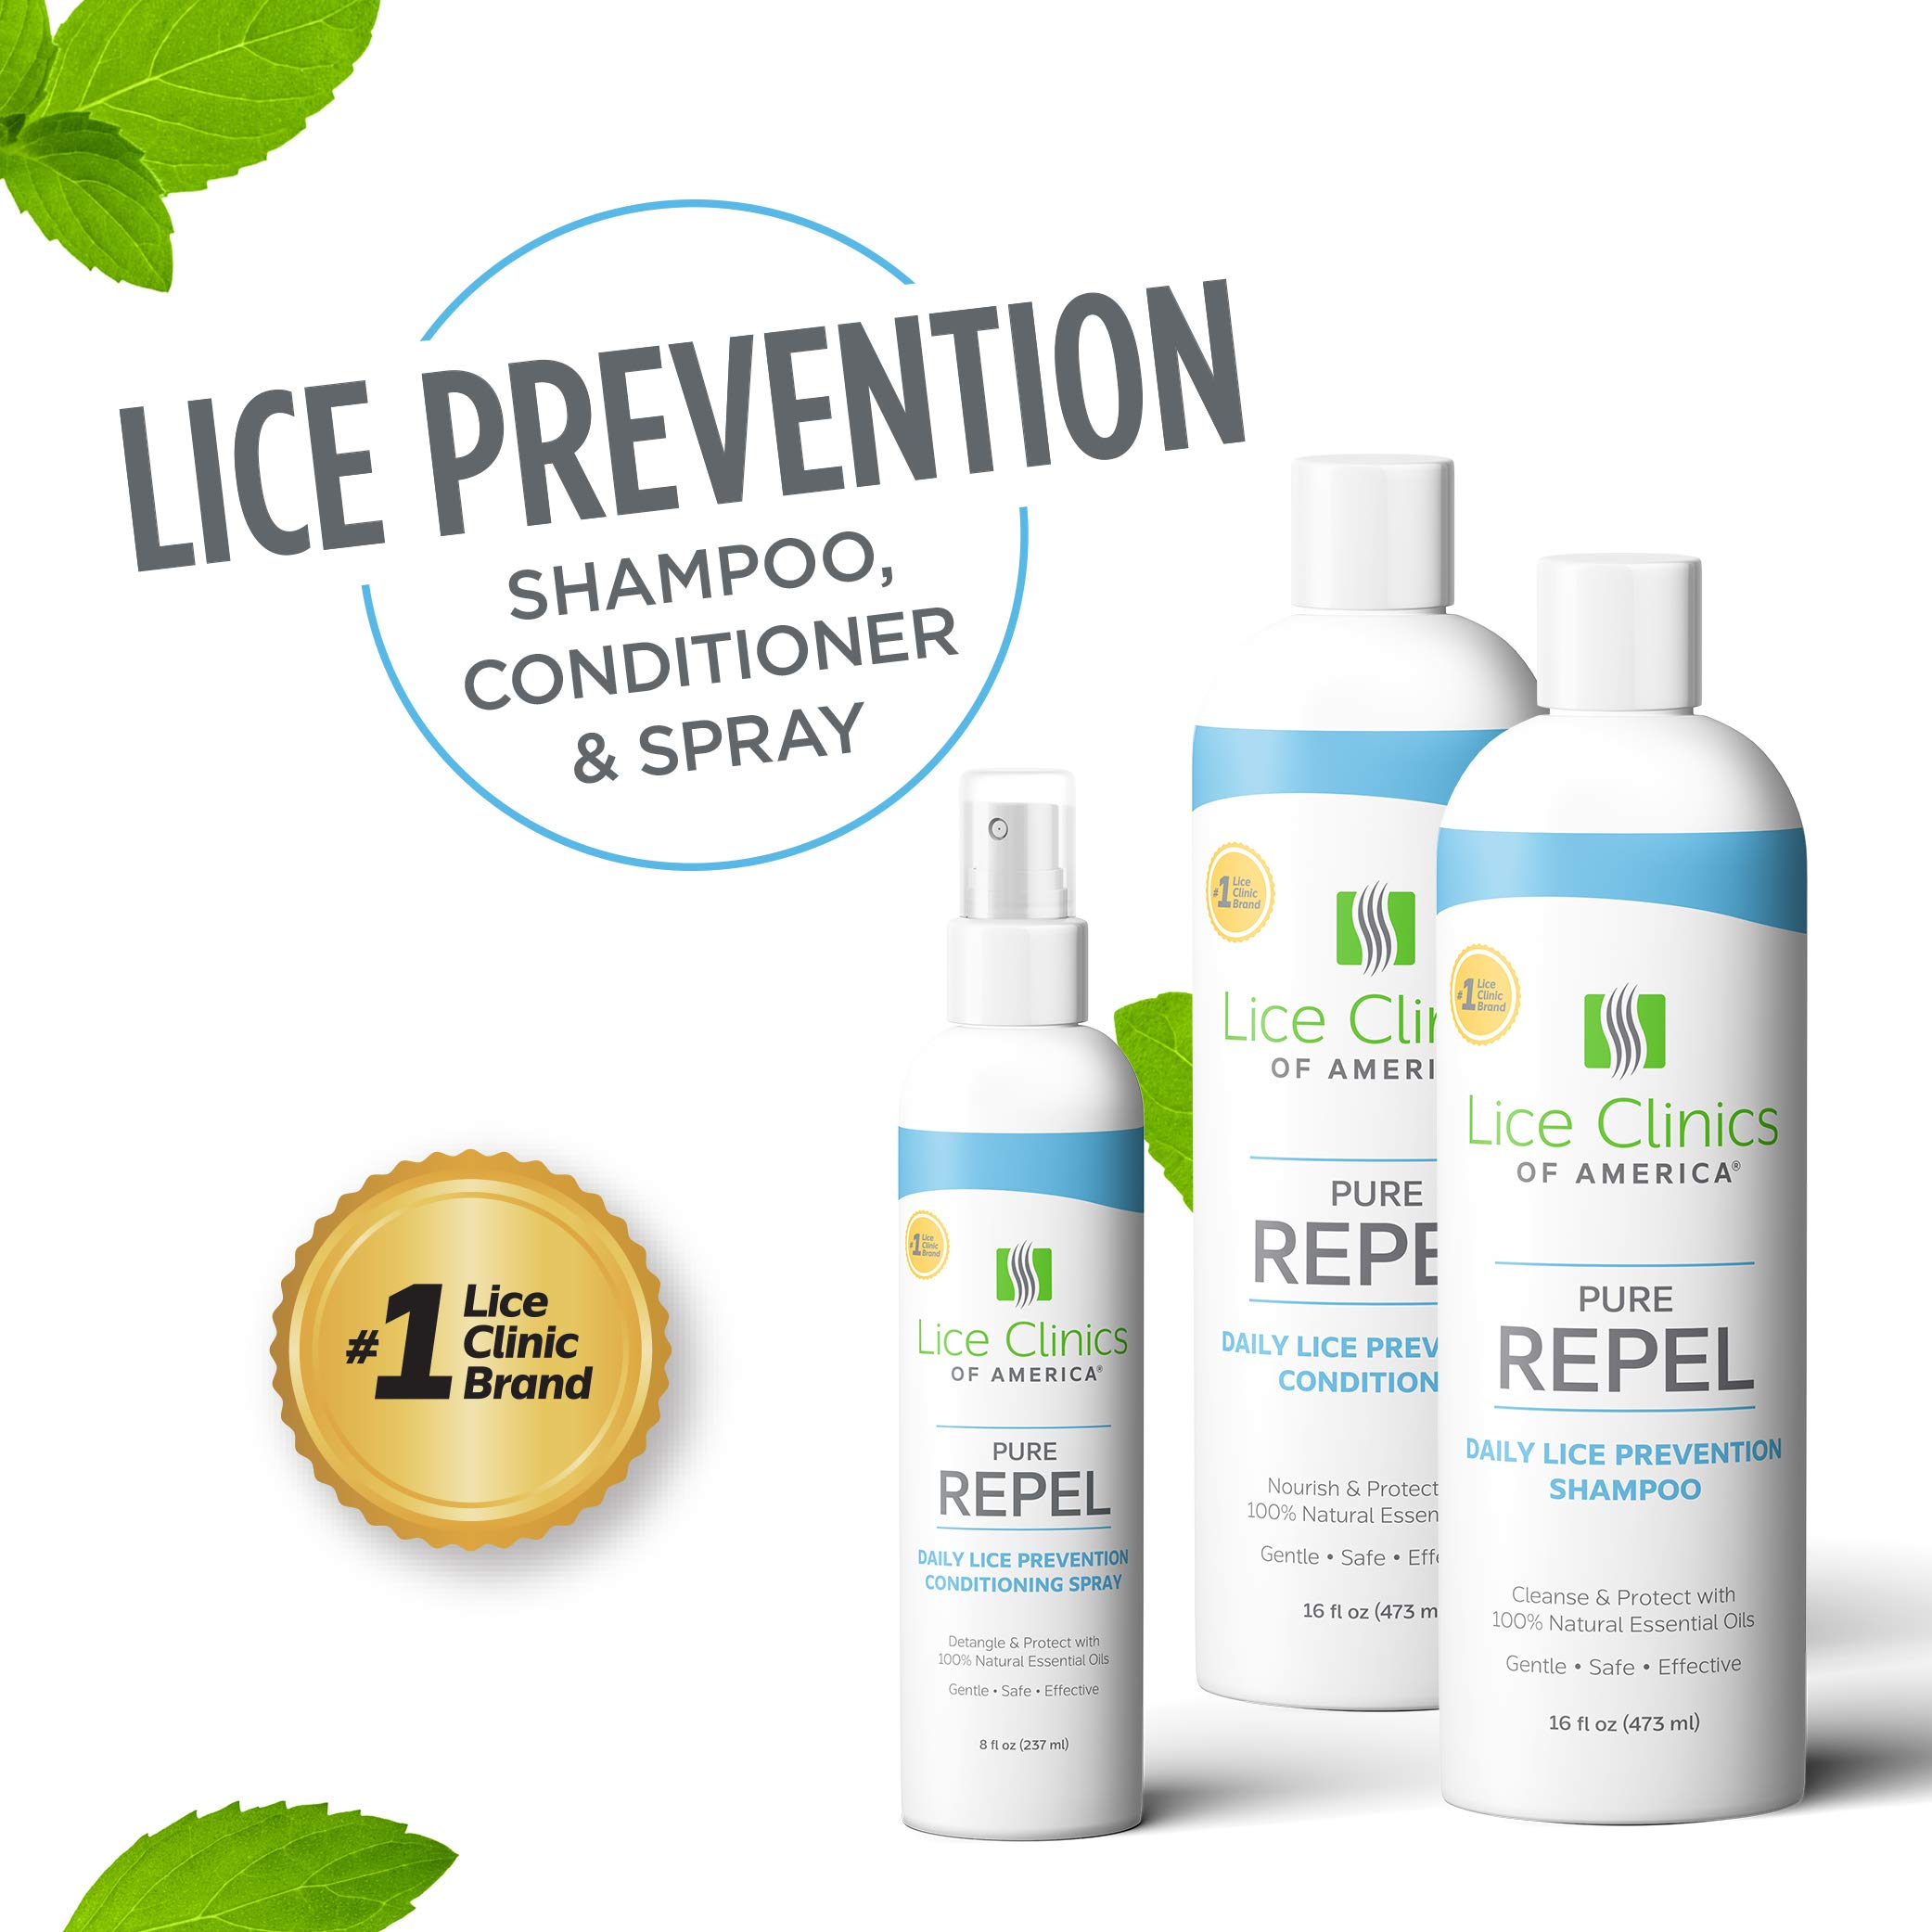 Lice Clinics of America Daily Lice Prevention Shampoo, Conditioner, and Conditioning Spray Kit - Repel Lice with 100% Natural Essential Oils (3 Pack)